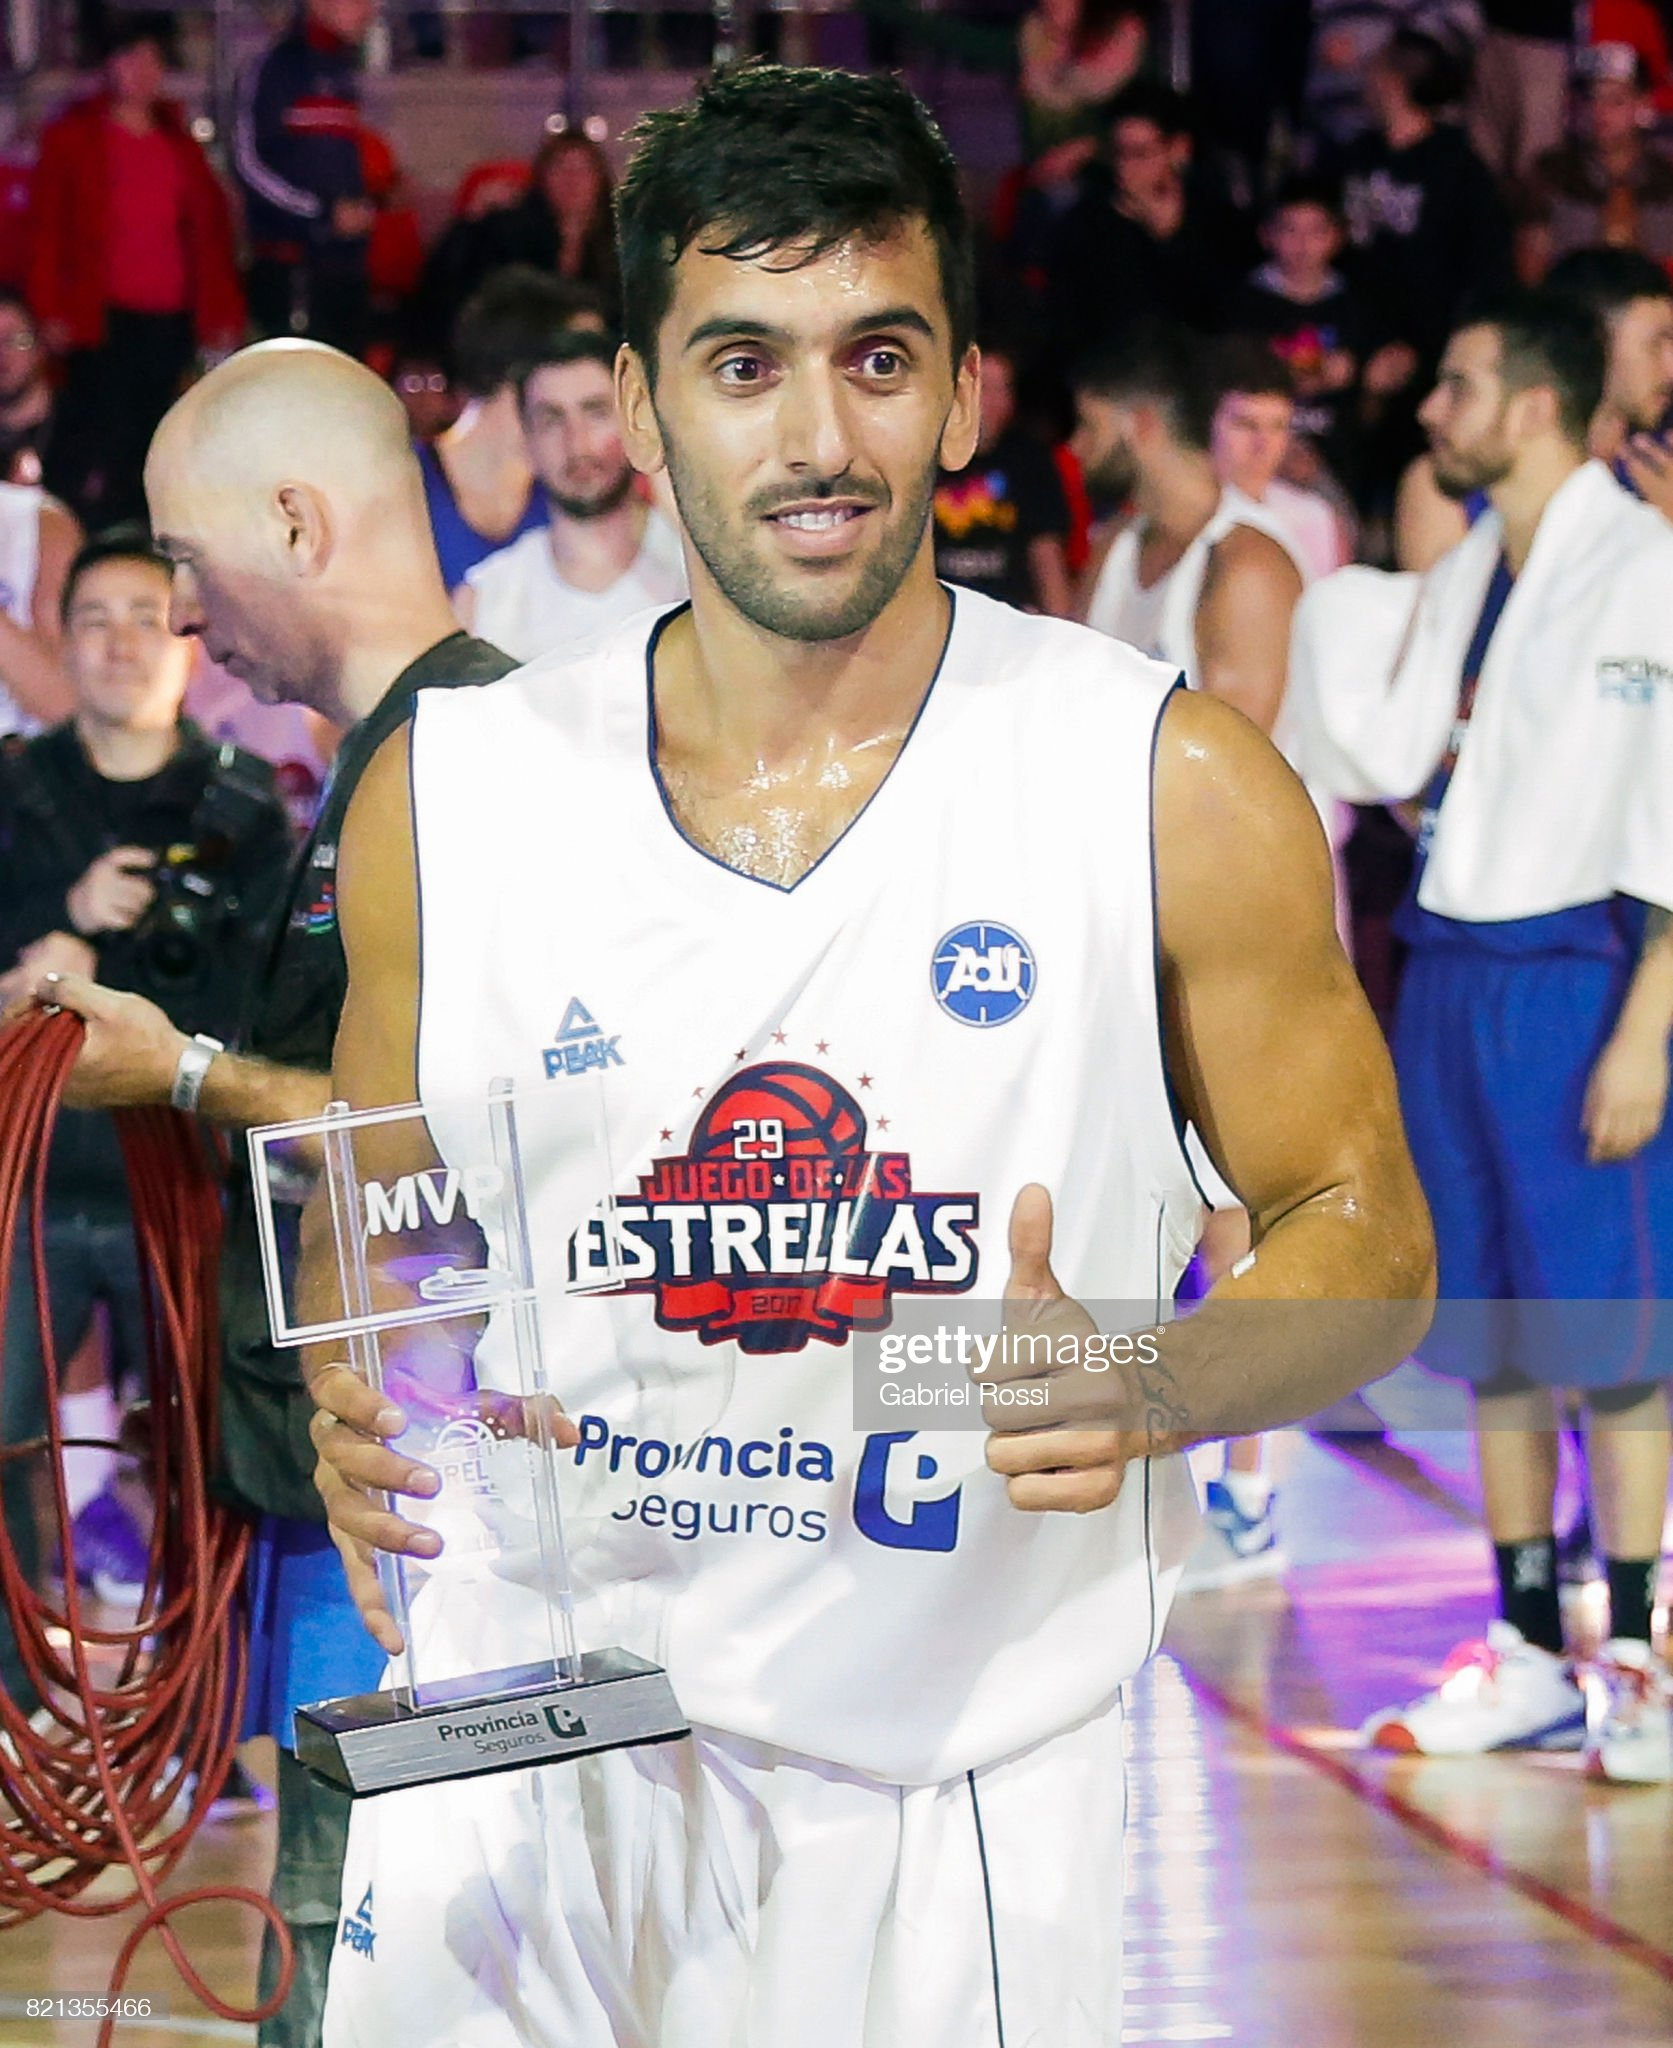 ¿Cuánto mide Facundo Campazzo? - Altura - Real height Facundo-campazzo-of-the-white-team-receives-the-mvp-trophy-at-the-end-picture-id821355466?s=2048x2048